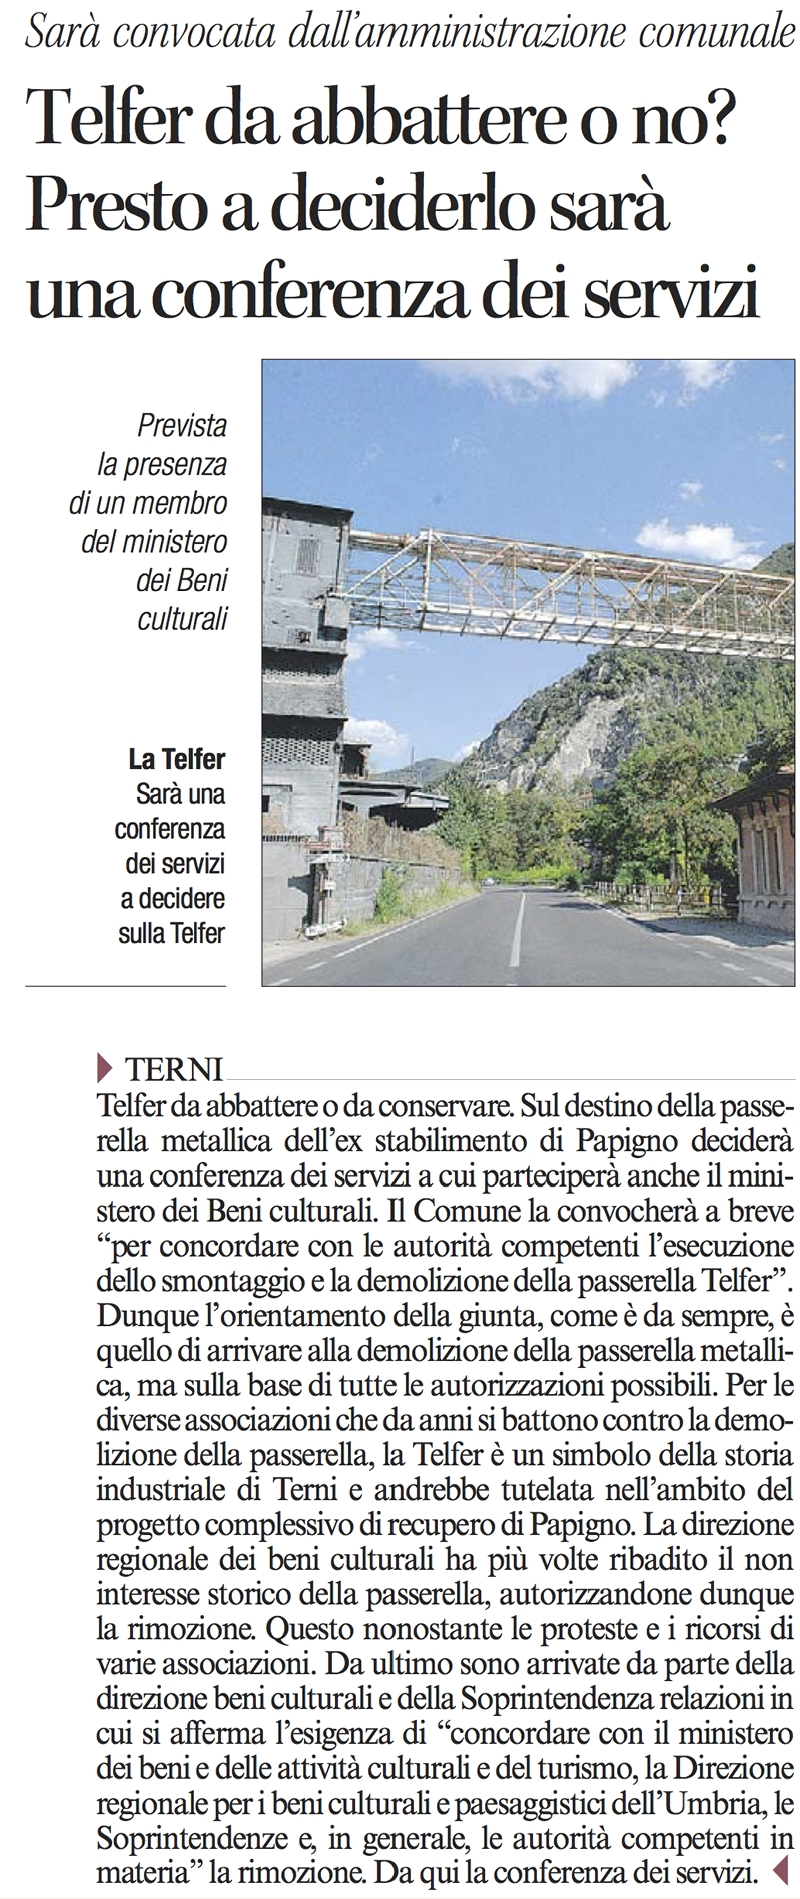 CORRIERE DELL'UMBRIA 12-03-2015 - PAG. 47